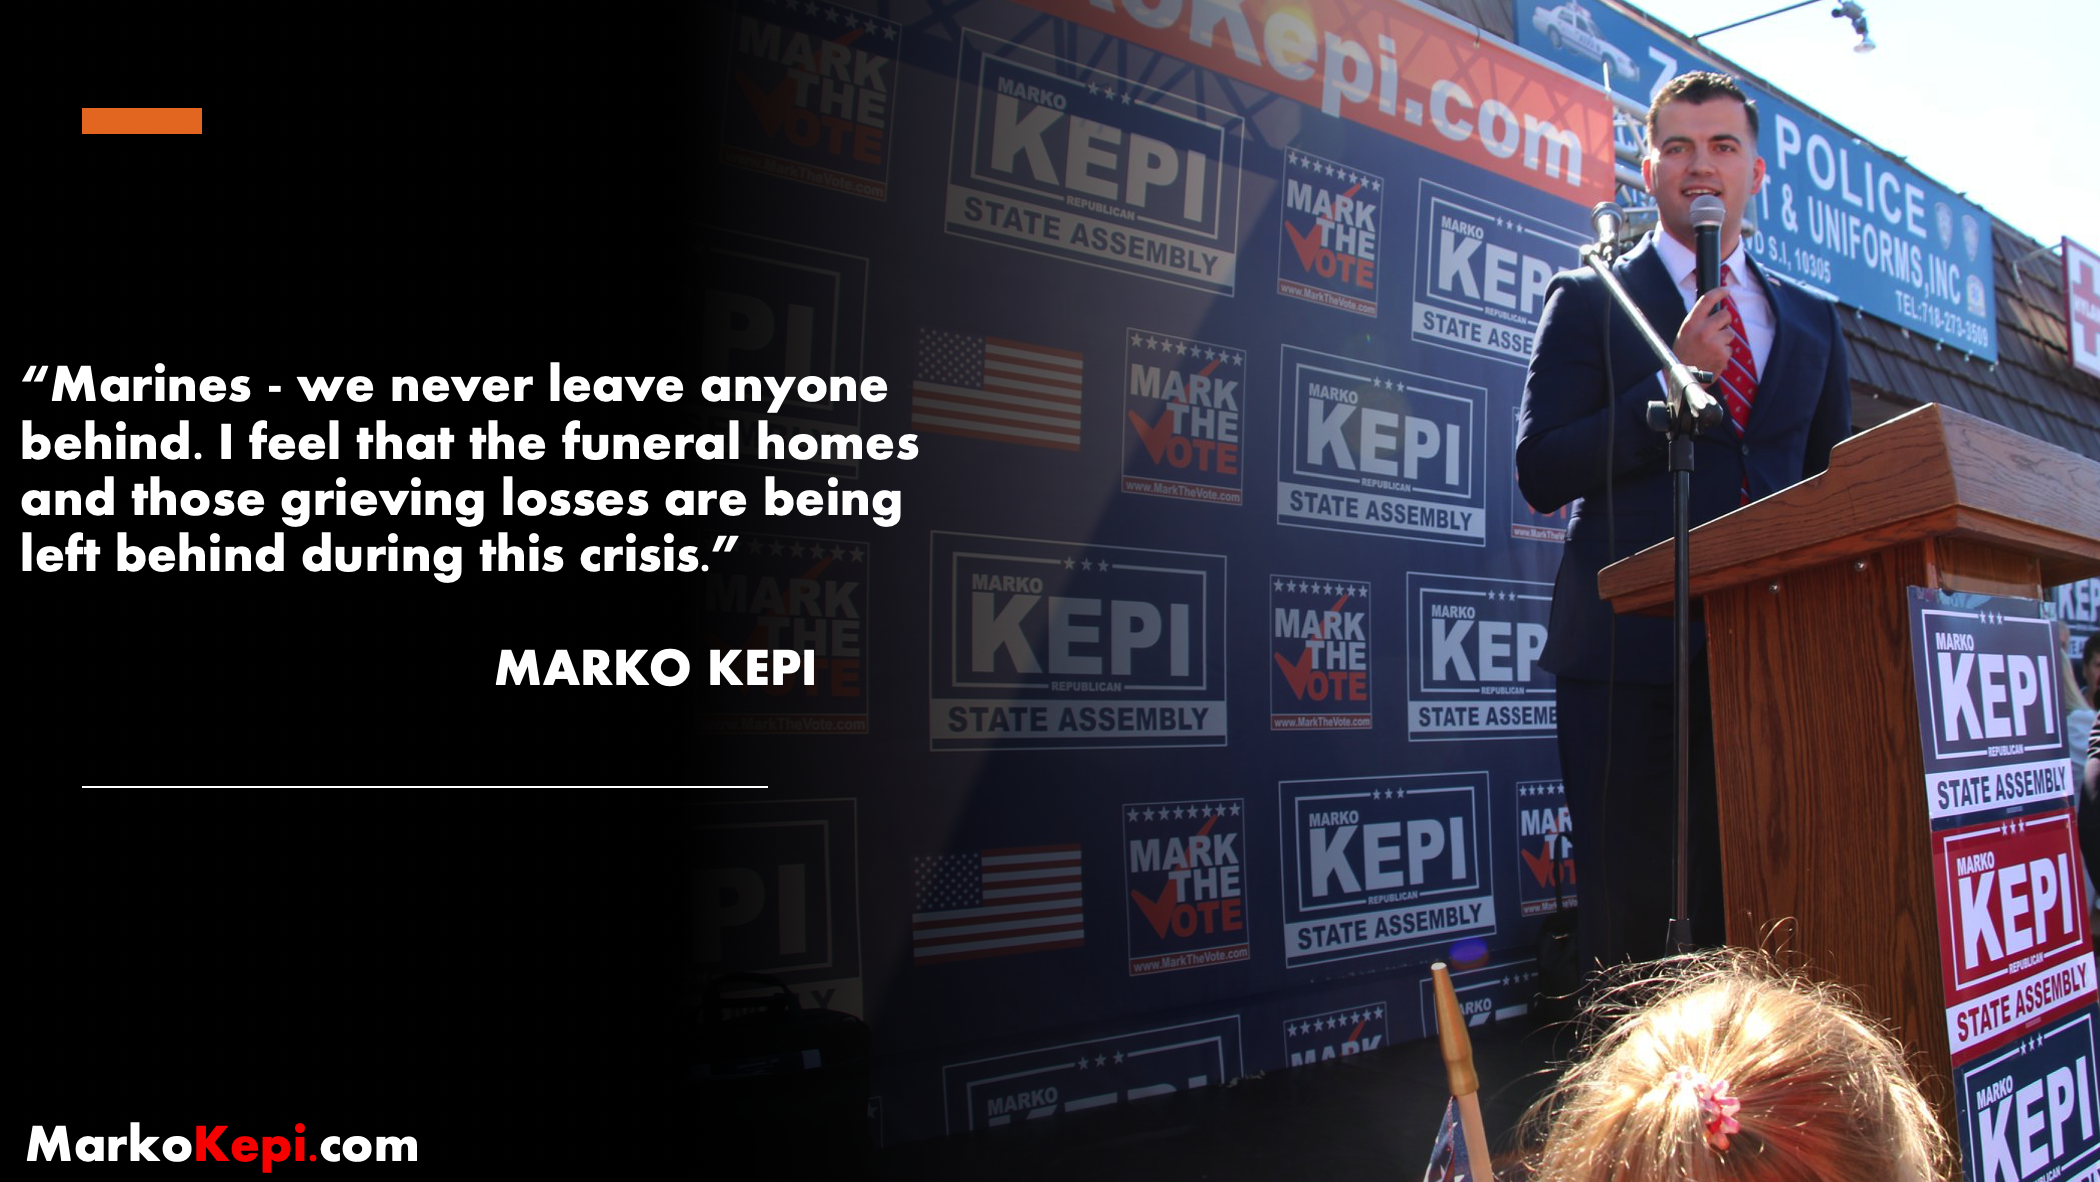 Marko Kepi Republican Candidate for NYS Assembly calls on the National Guard